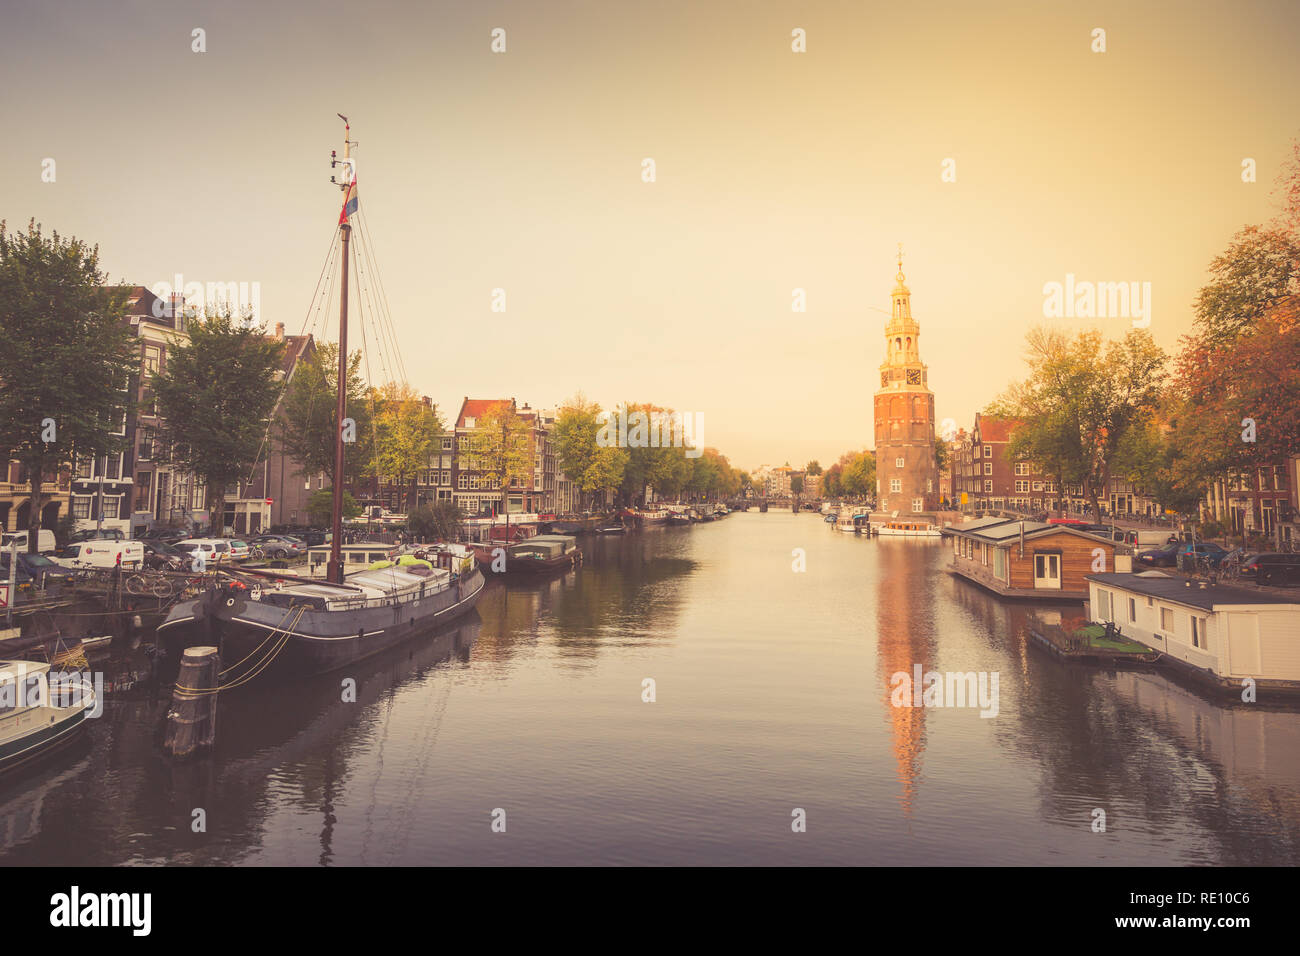 Typical view of canal embankment in historic center of city, Amsterdam, Netherlands Stock Photo